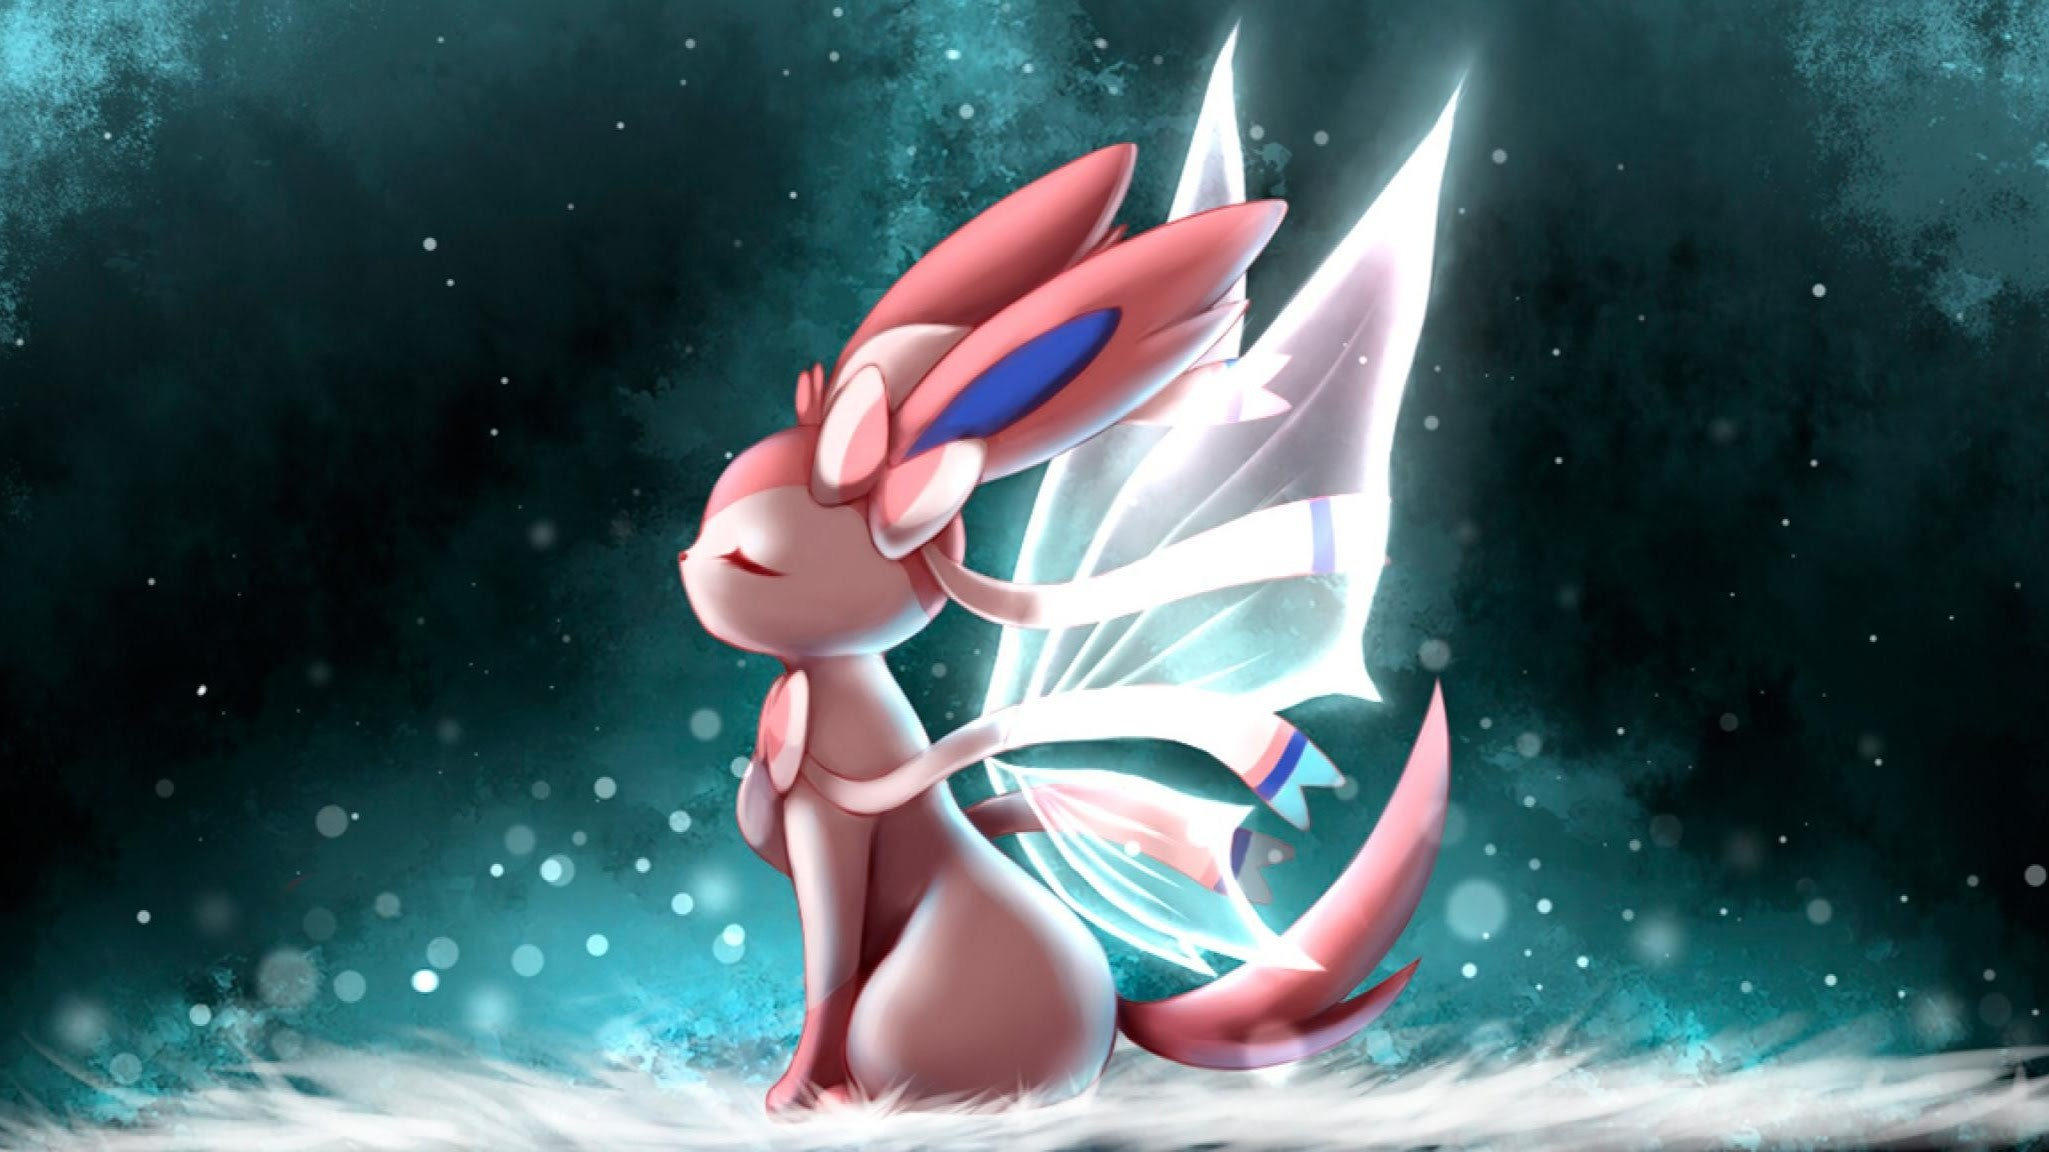 Sylveon Wallpapers 63 images